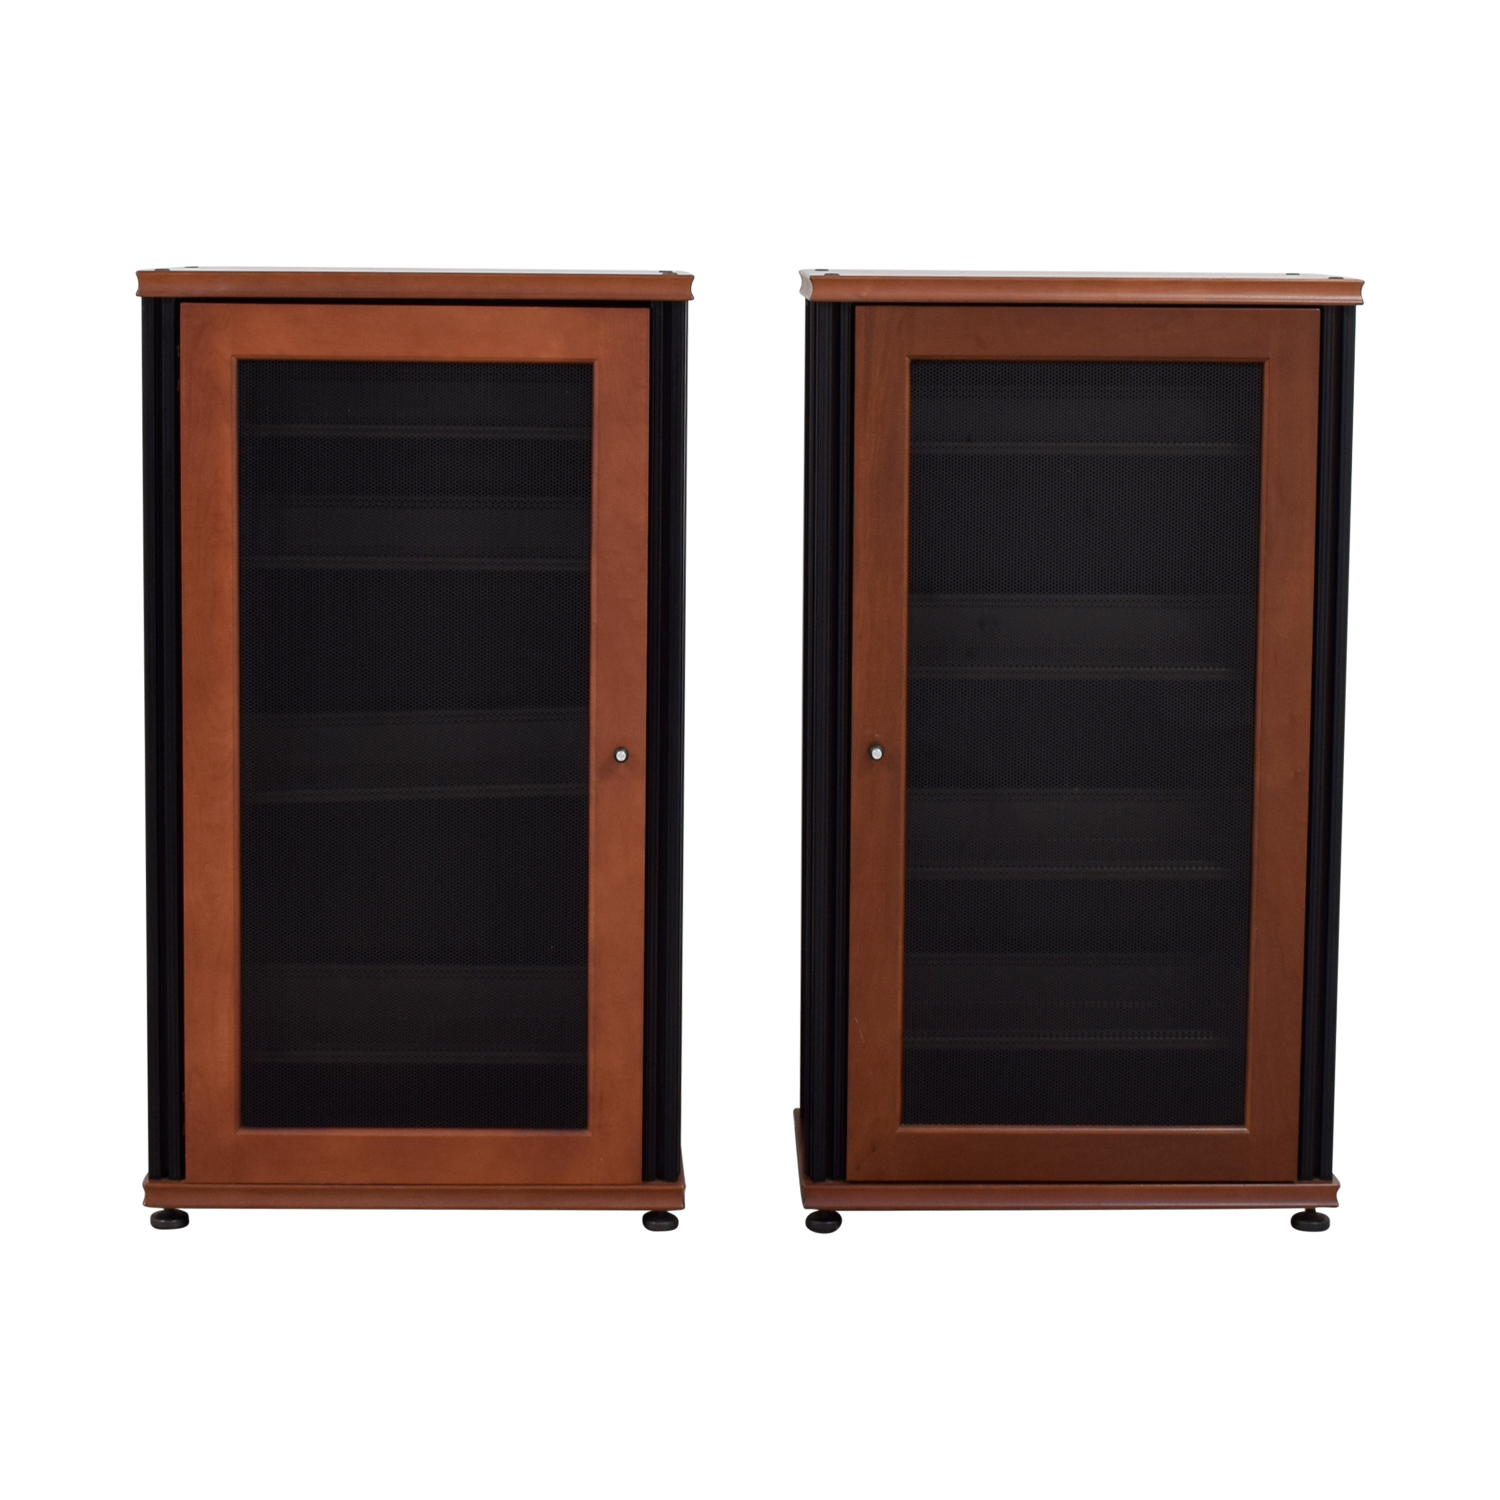 Salamander Designs Salamander Designs Synergy Media Cabinets with Glass Doors Bookcases & Shelving